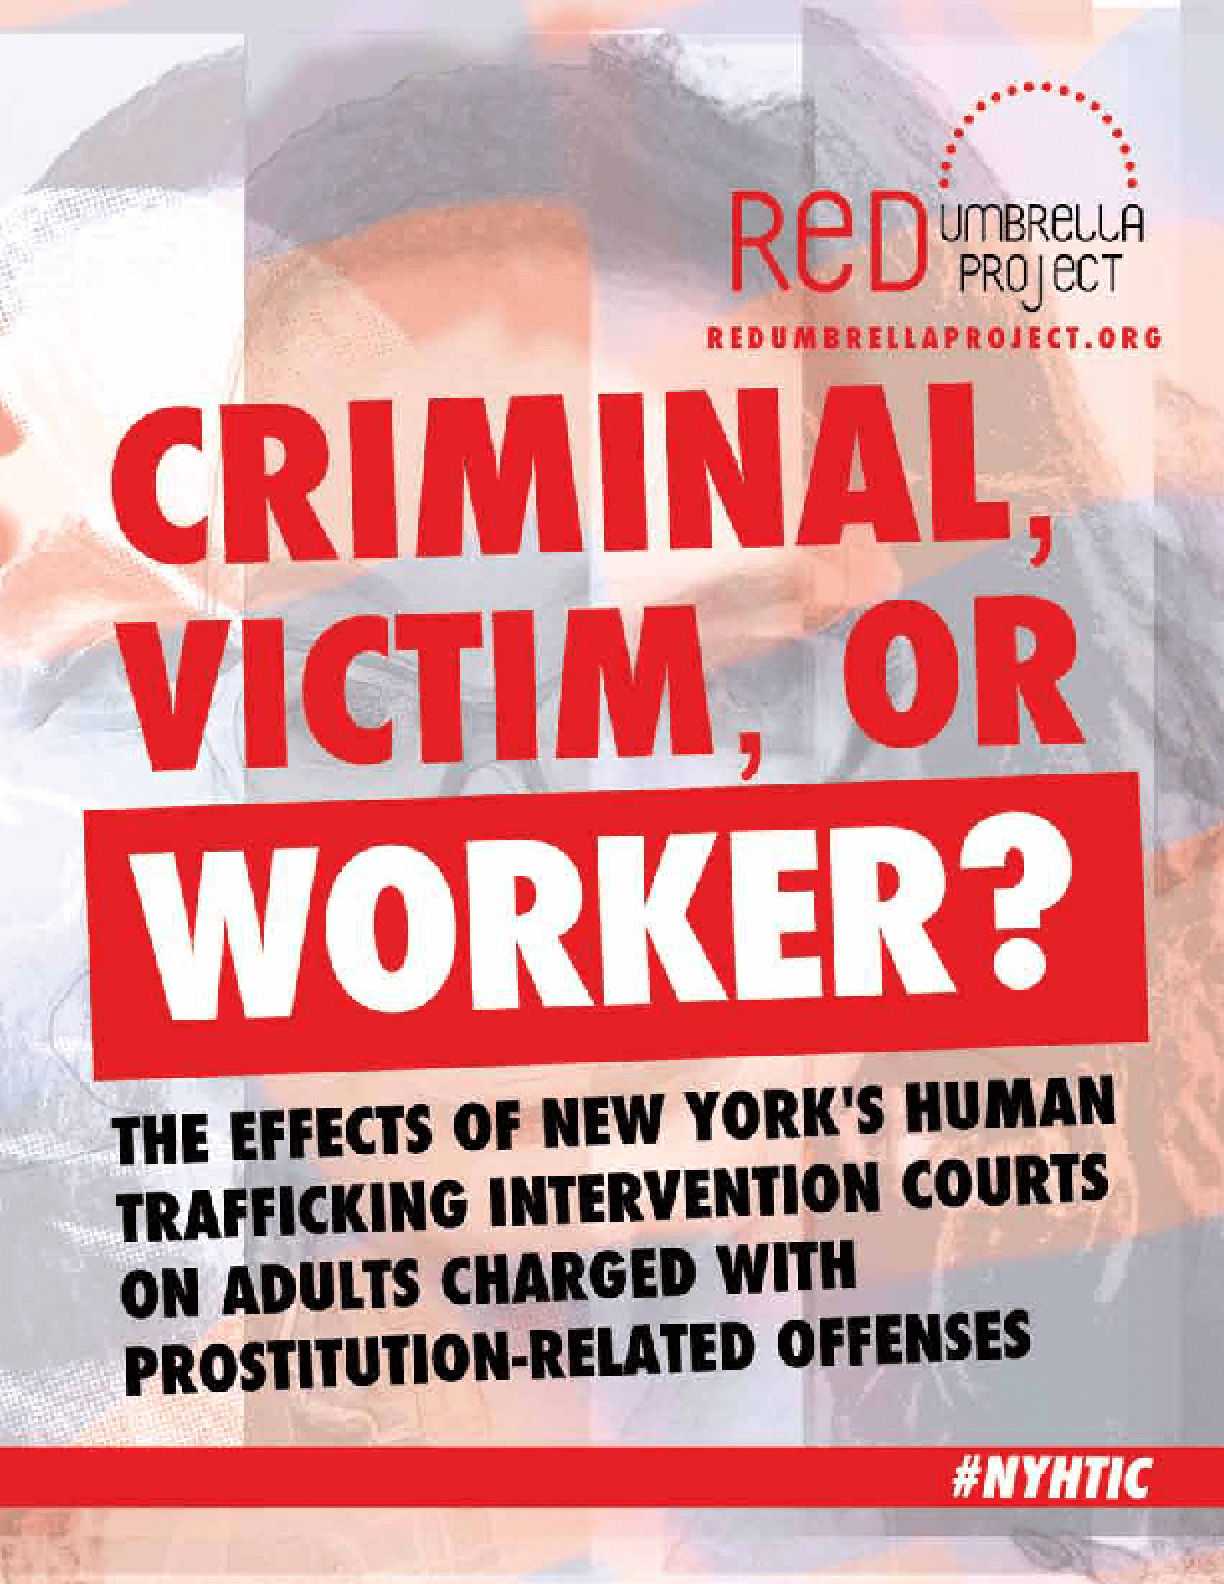 Criminal, Victim, or Worker? The Effects of New York's Human Trafficking Intervention Courts on Adults Charged with Prostitution-Related Offenses